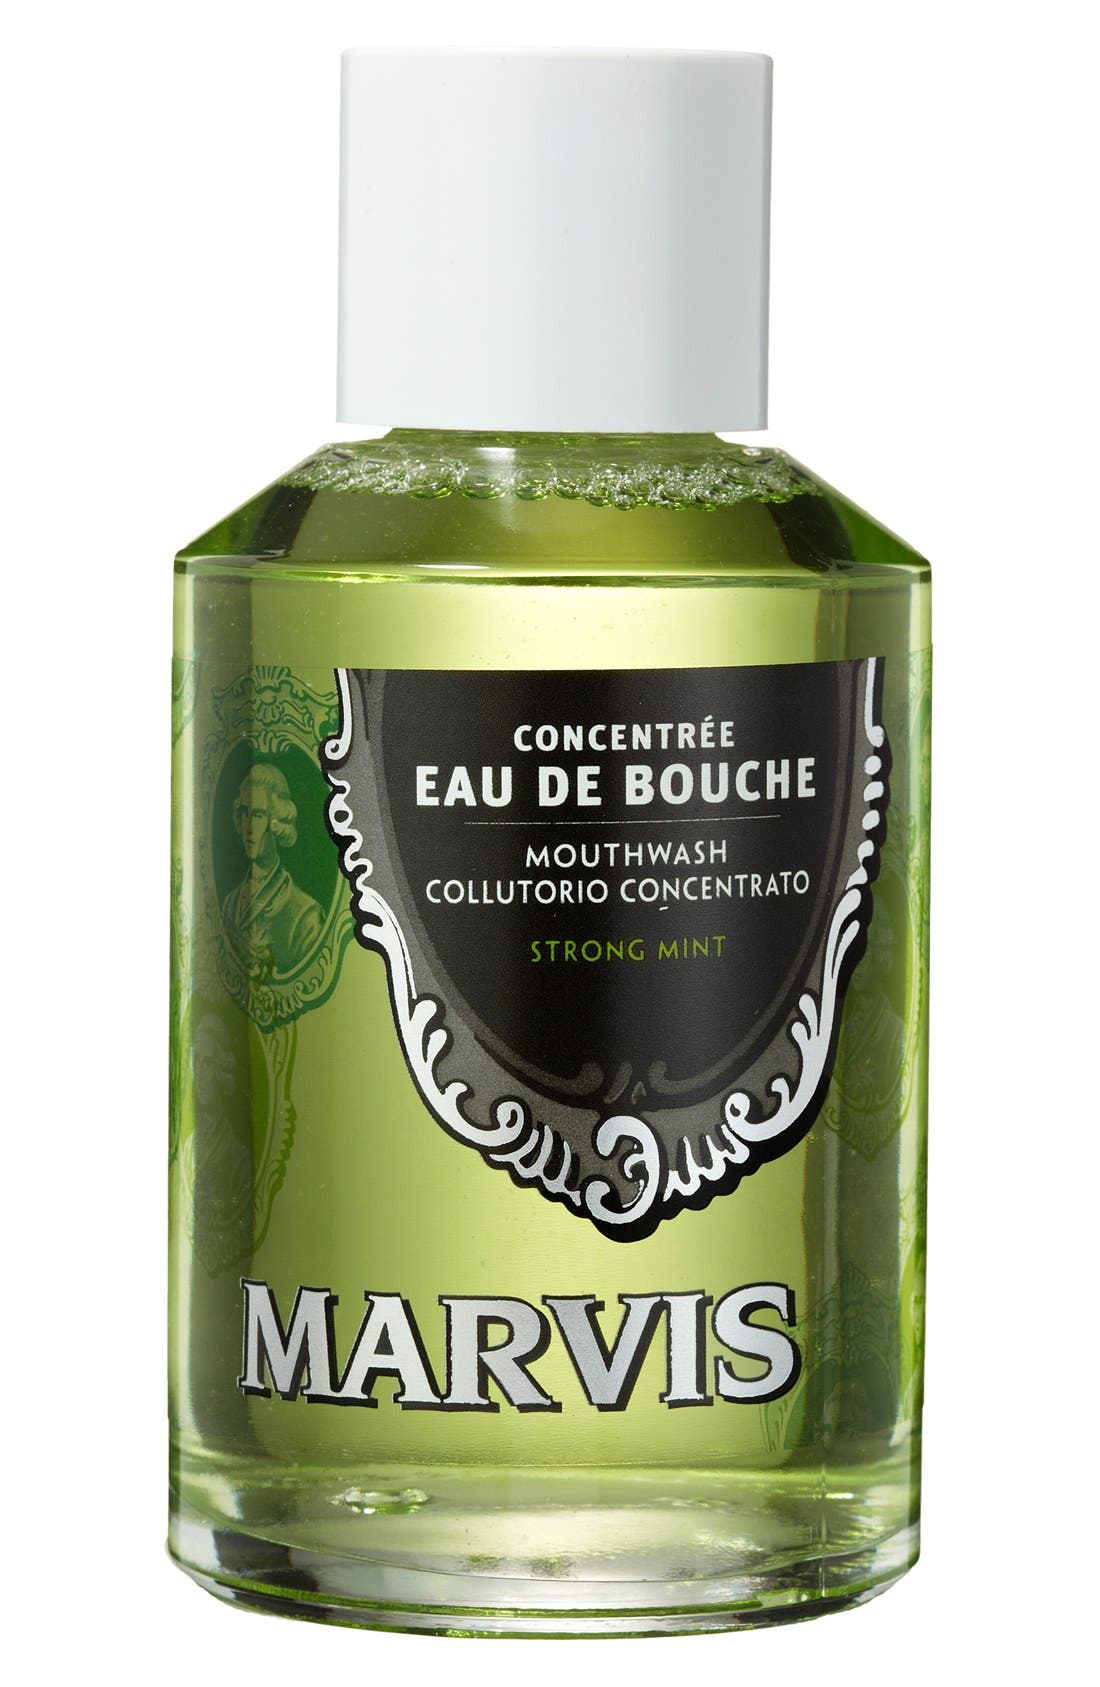 C.O. Bigelow® 'Marvis' Strong Mint Mouthwash Concentrate